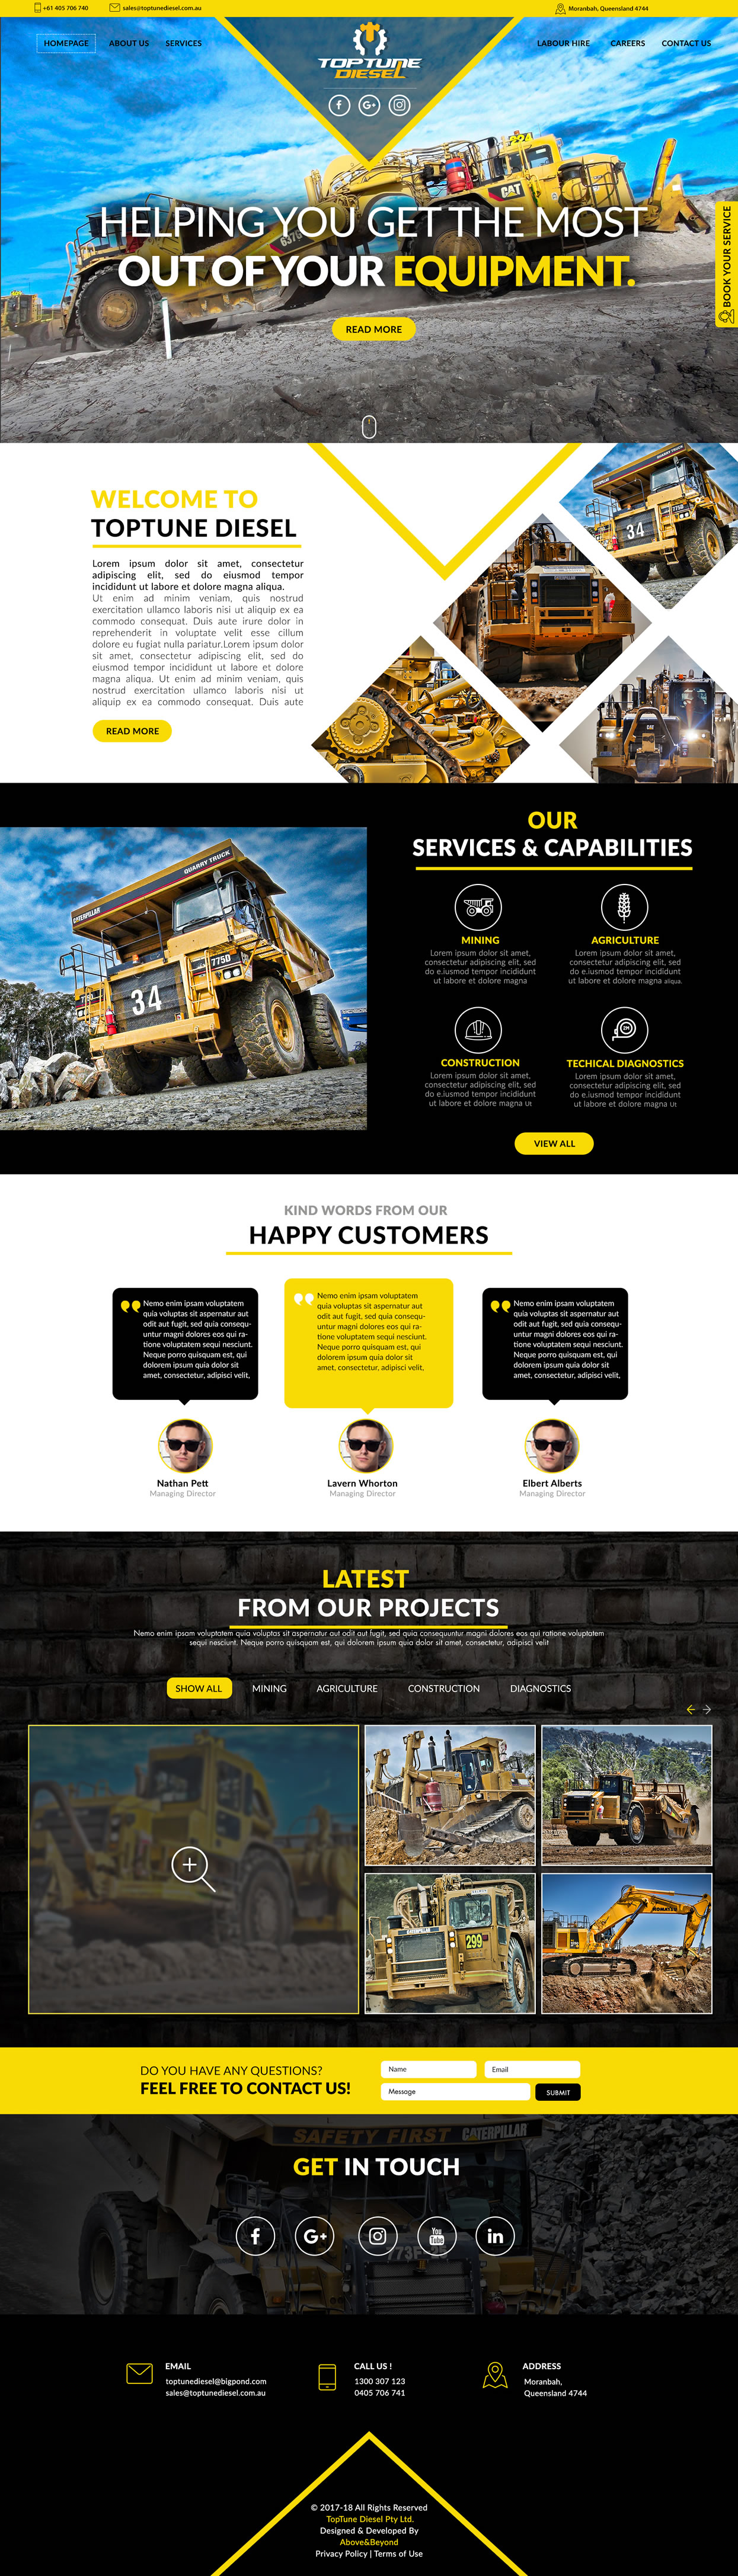 TopTune Diesel Home Page